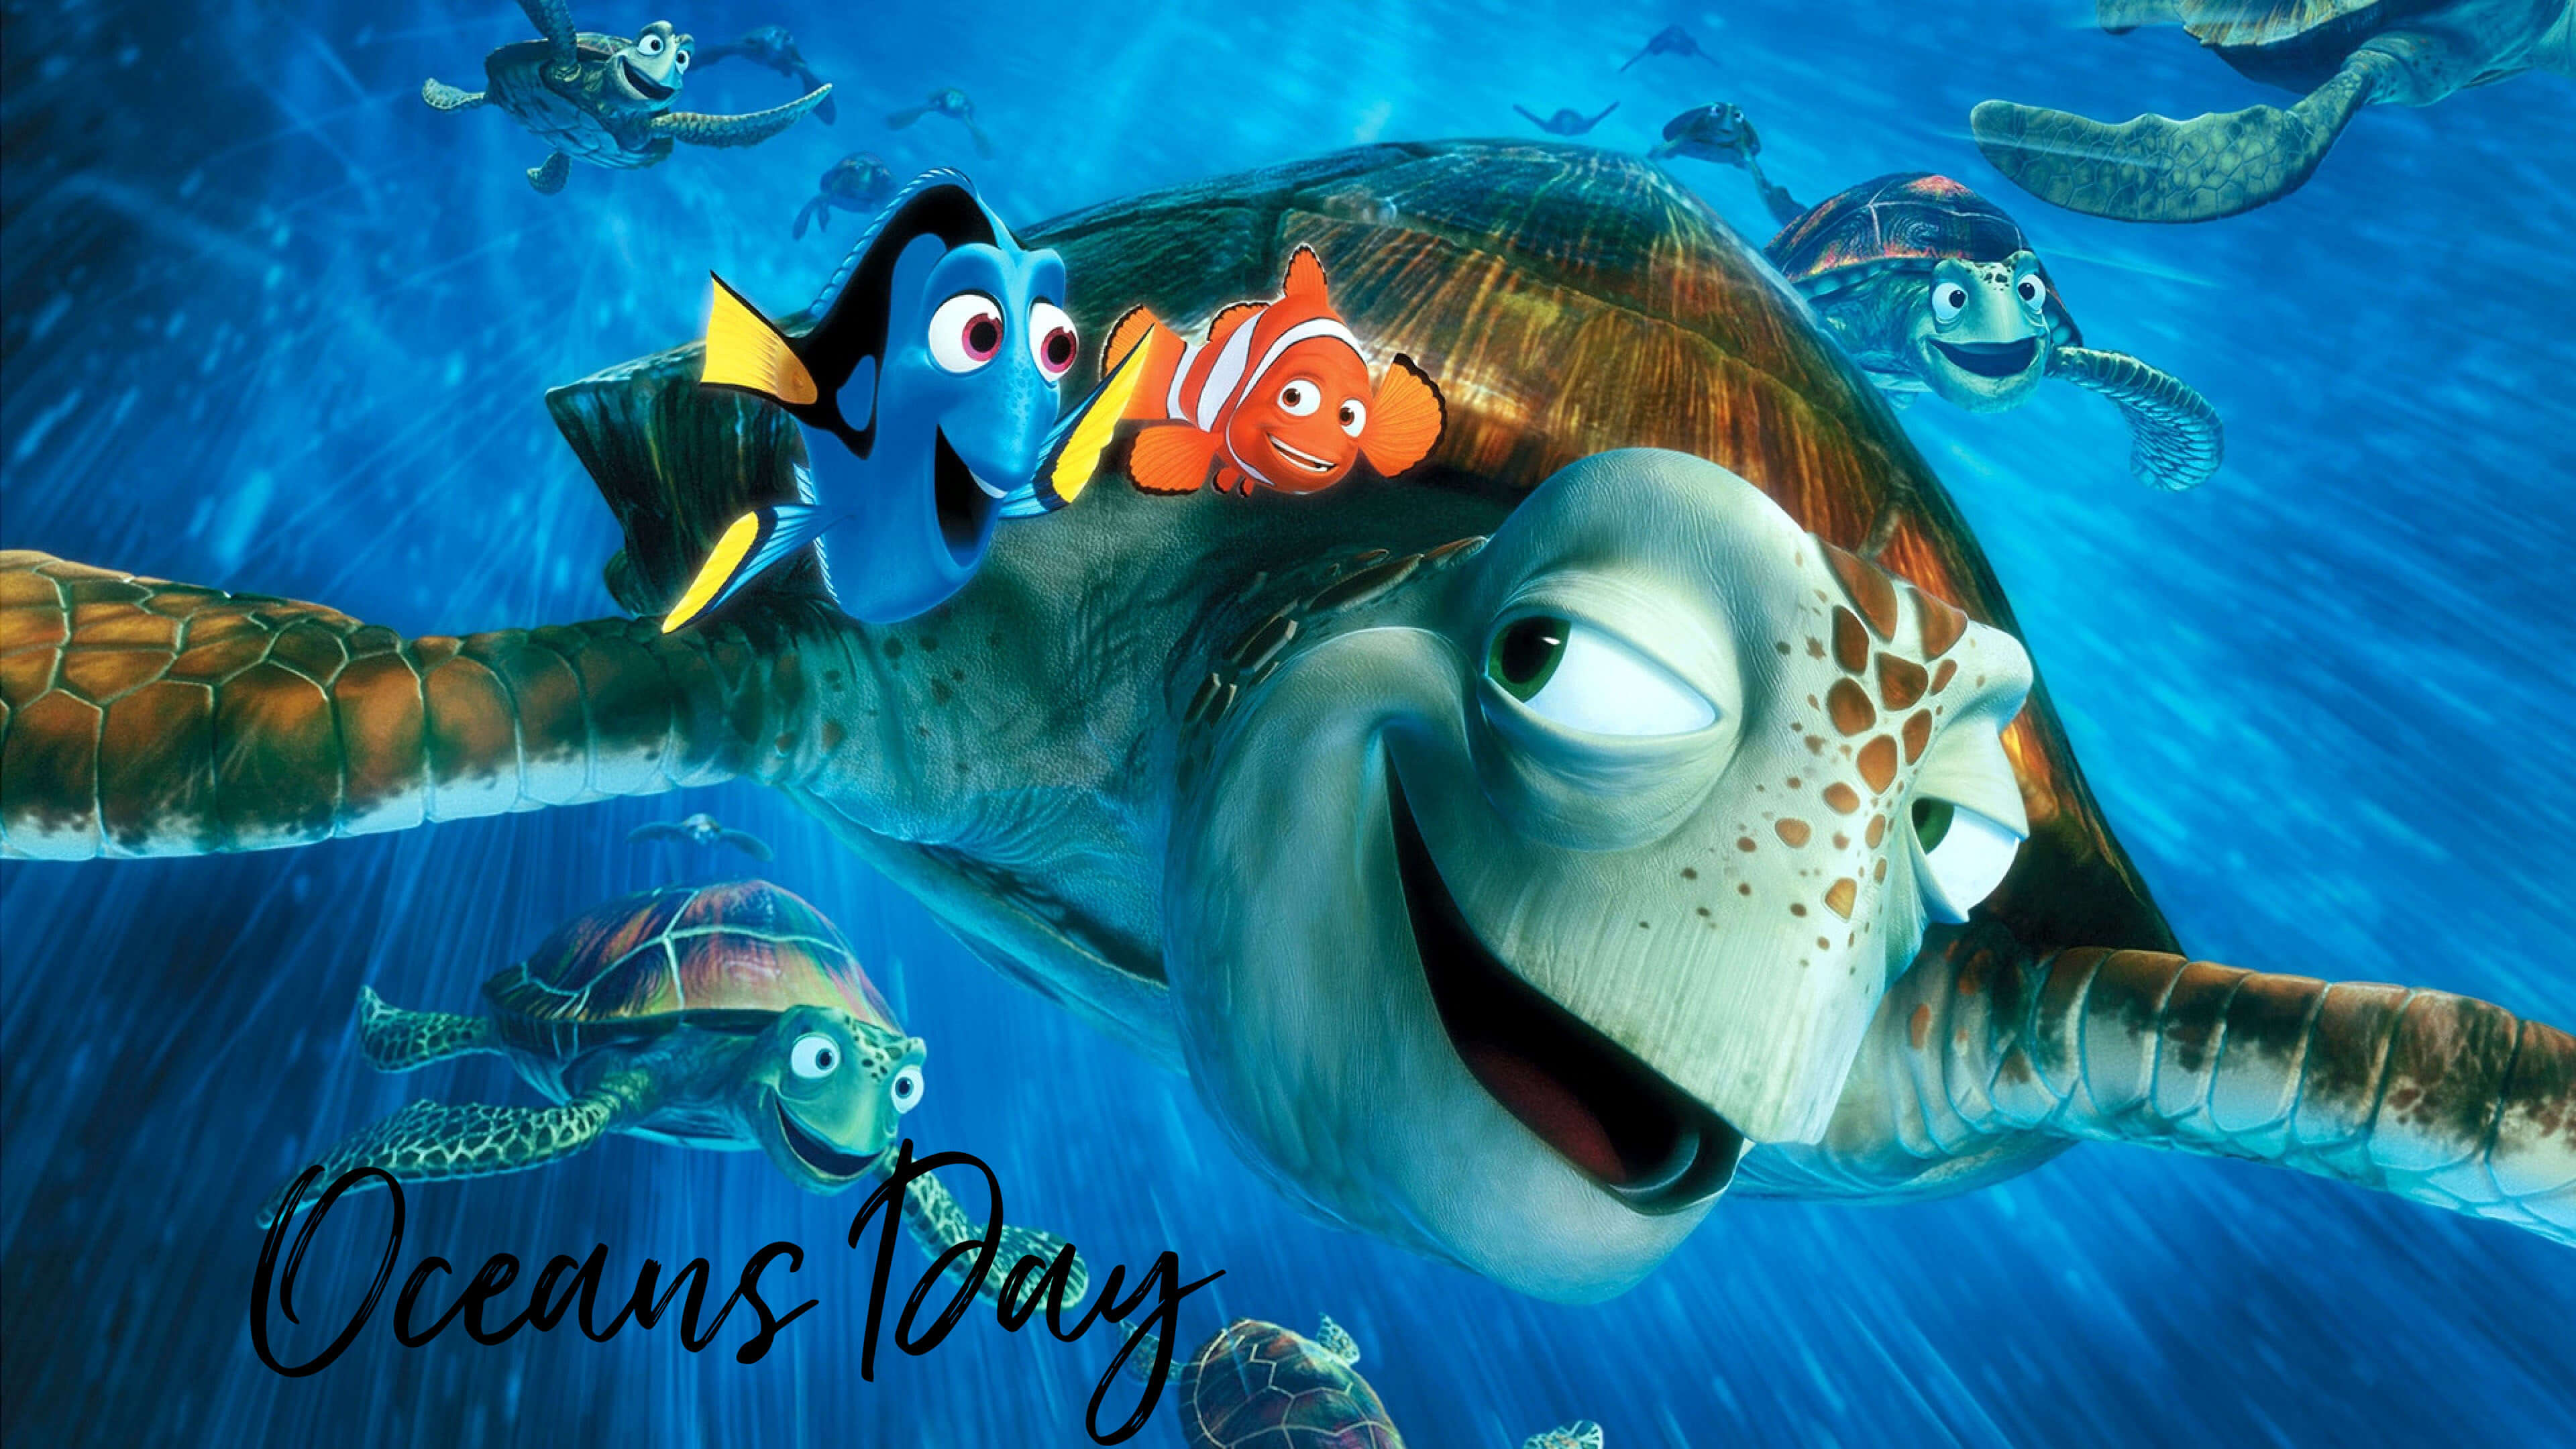 happy world oceans day finding nemo animations hd